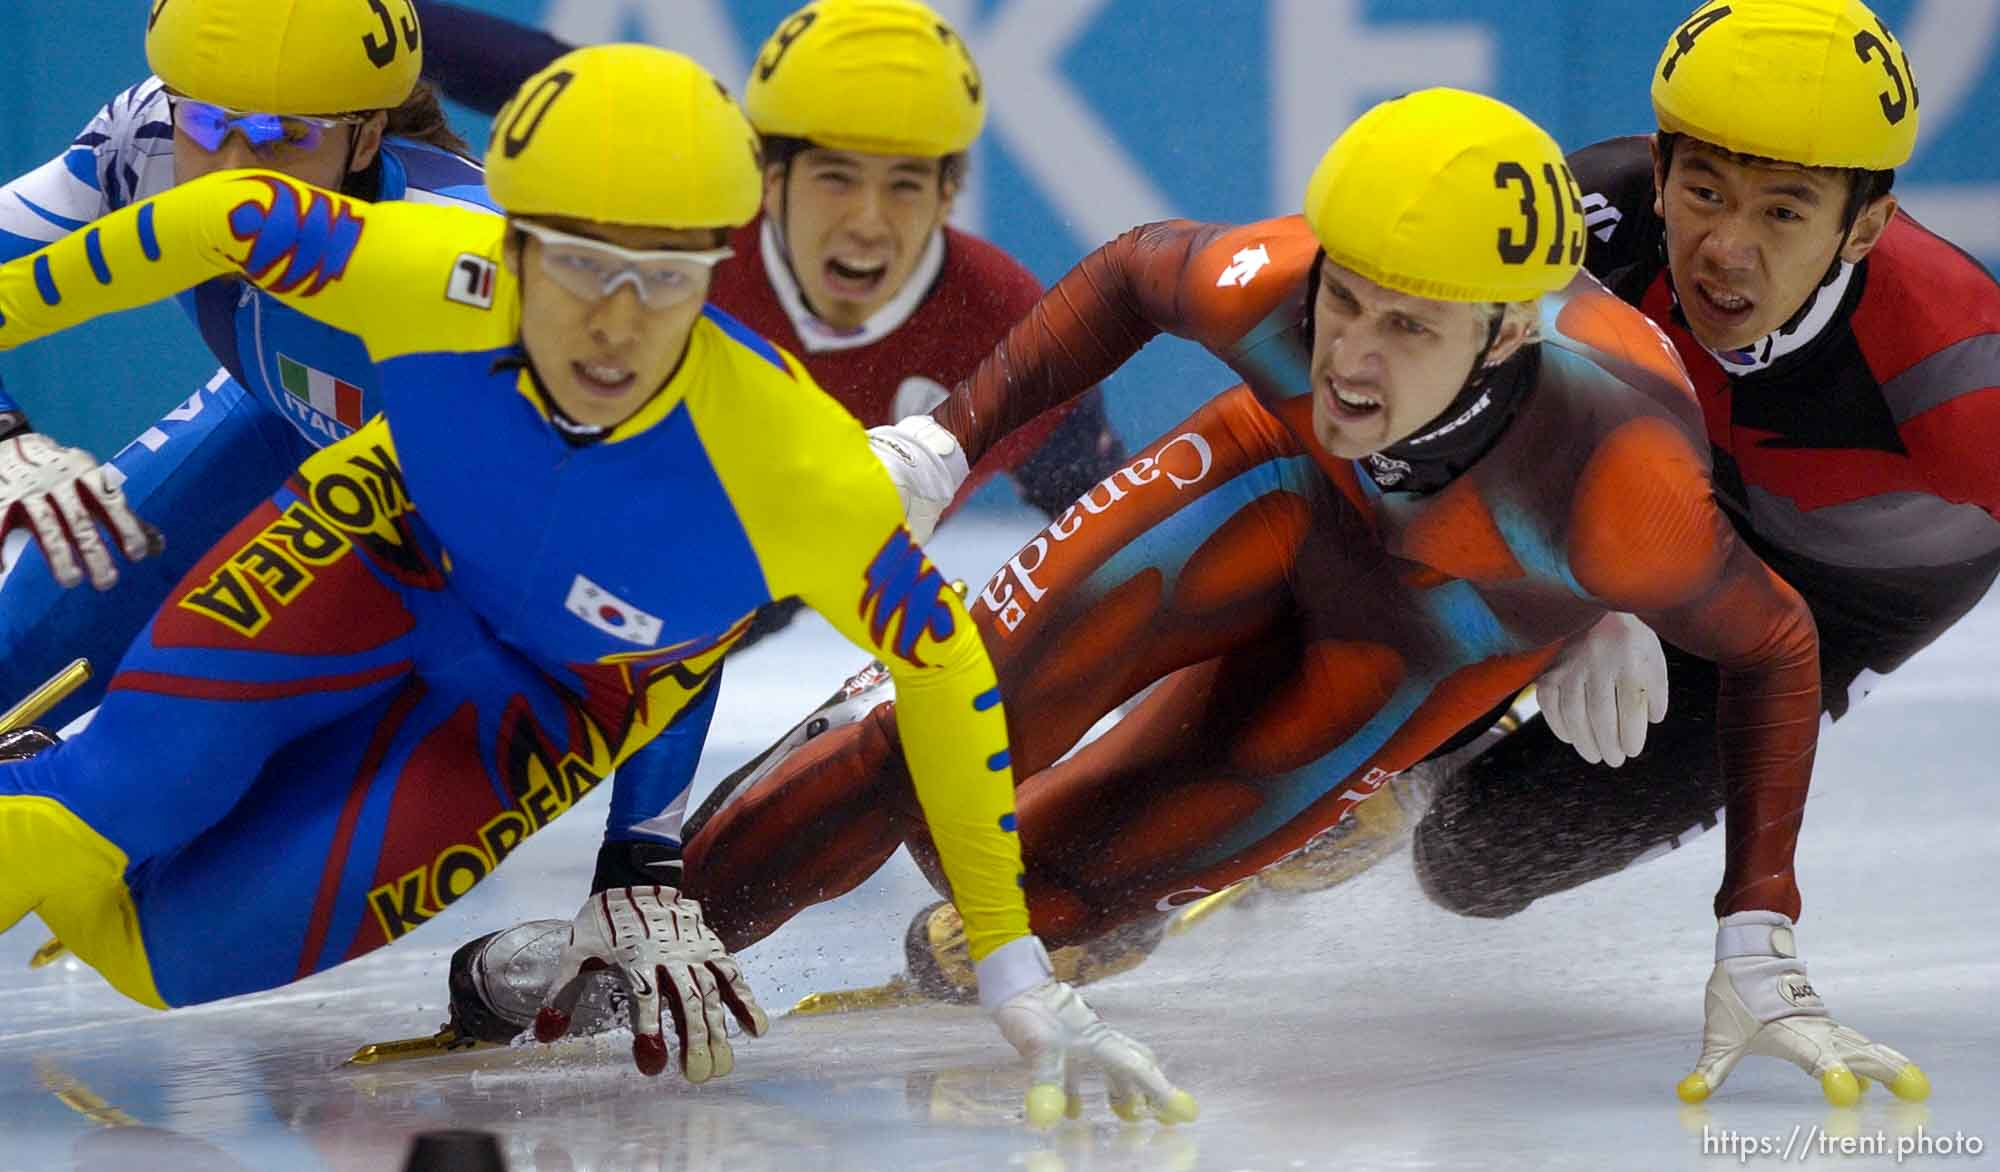 Men's 1500m Final, Wednesday evening at the Salt Lake Ice Center, 2002 Olympic Winter Games. 02.20.2002, 8:45:37 PM